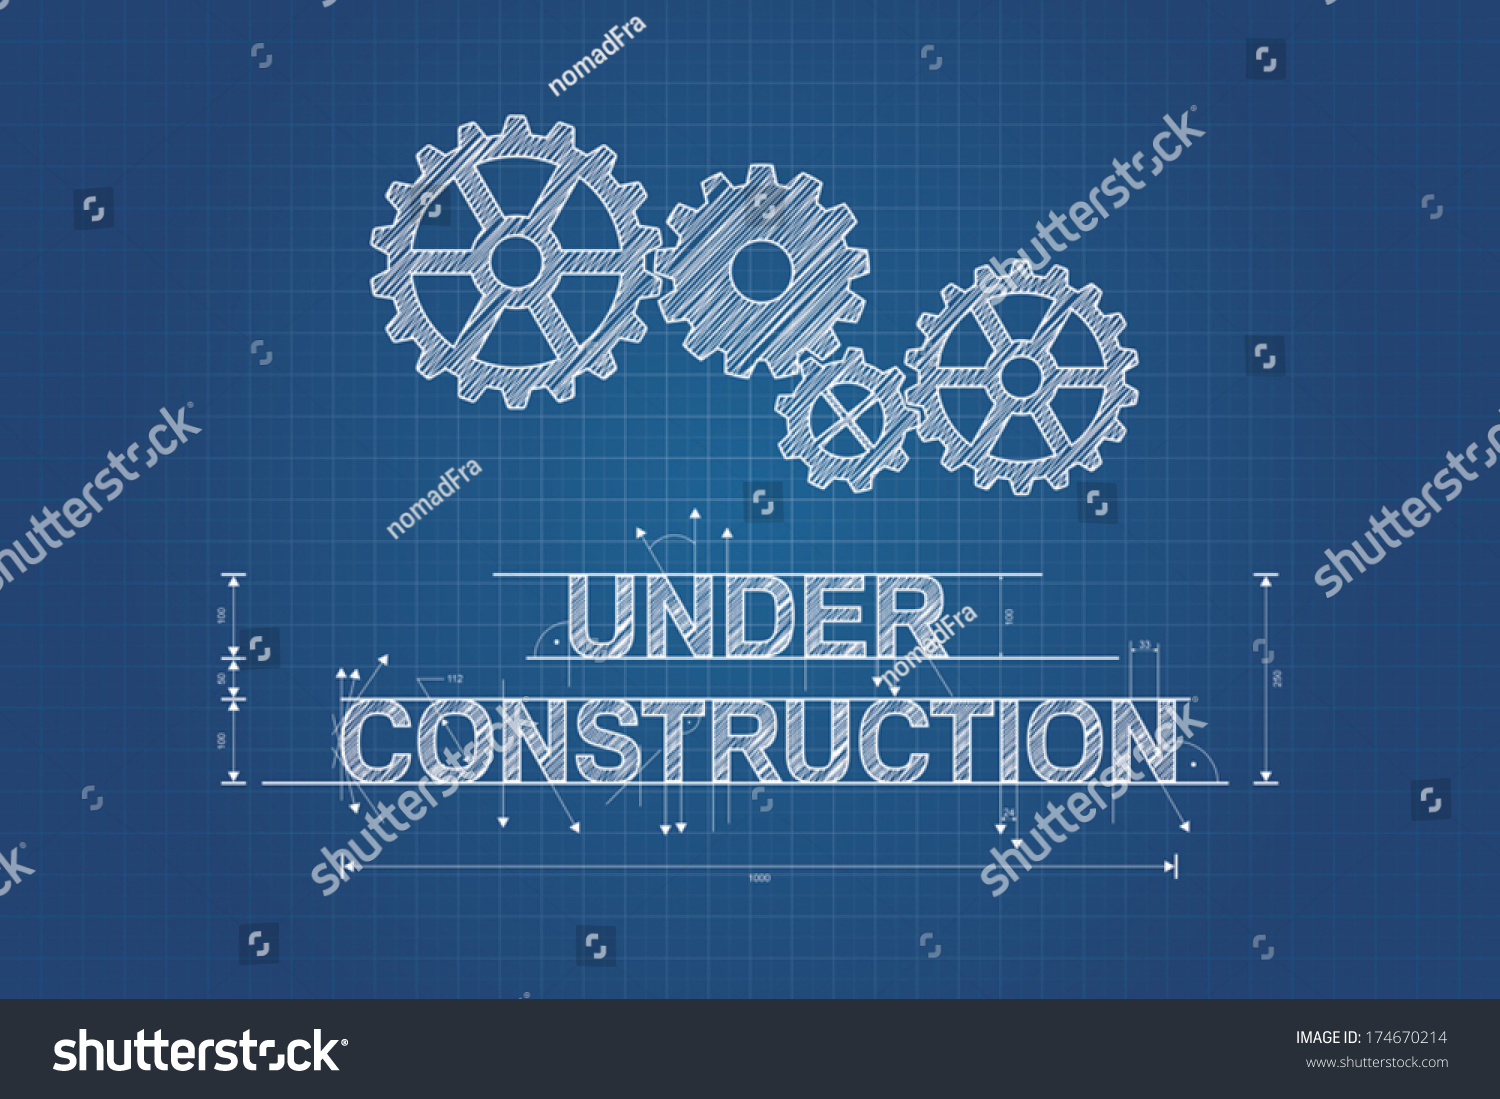 Under construction blueprint  technical drawing with gear wheel  Vector  design. Under Construction Blueprint Technical Drawing Gear Stock Vector